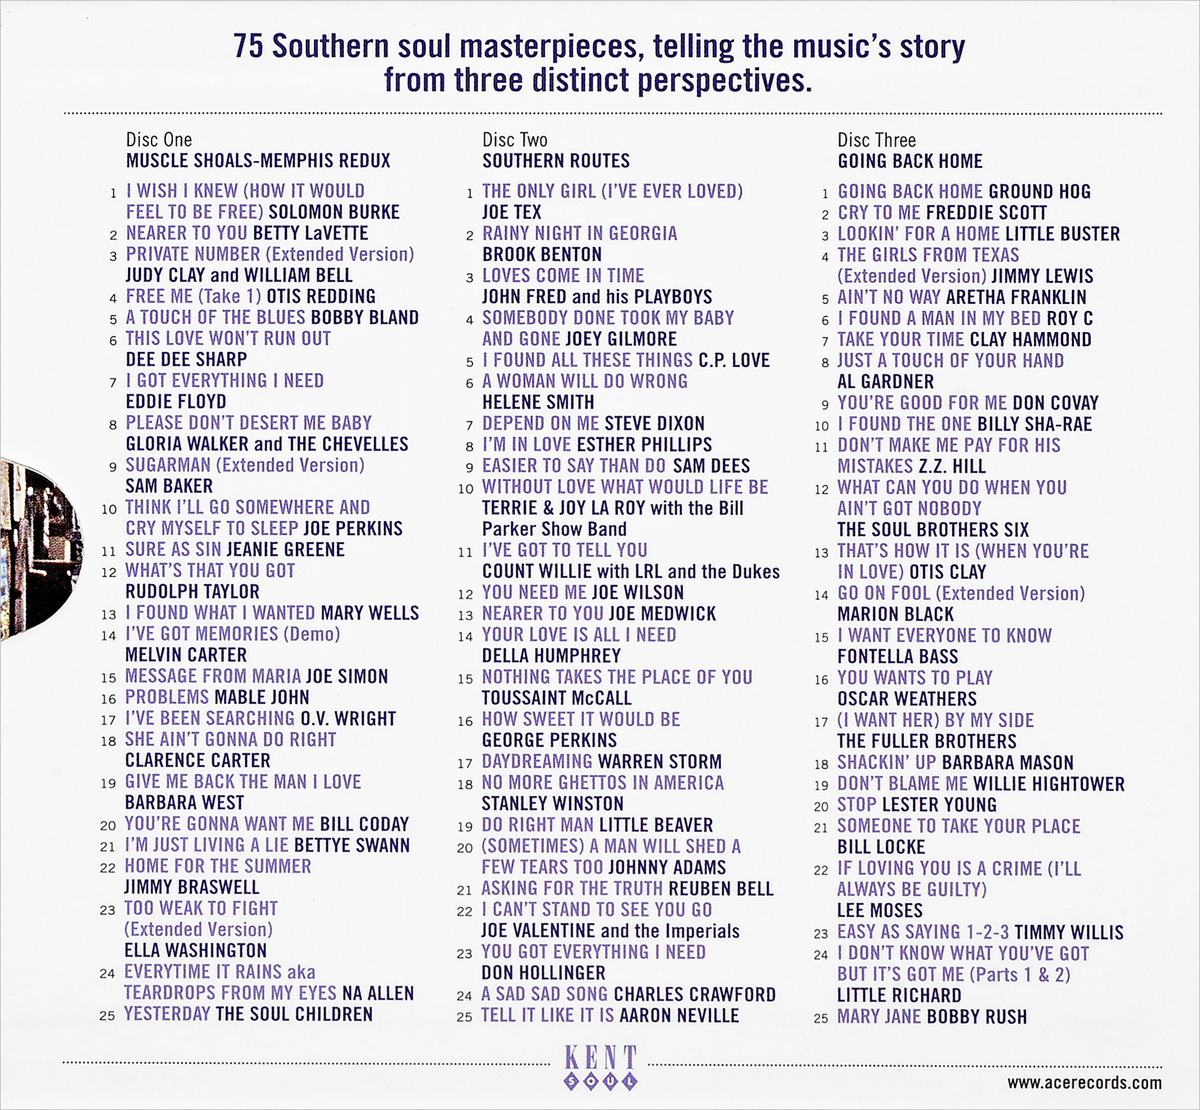 Back To The River - More Southern Soul Stories 1961-1978 (3 CD)